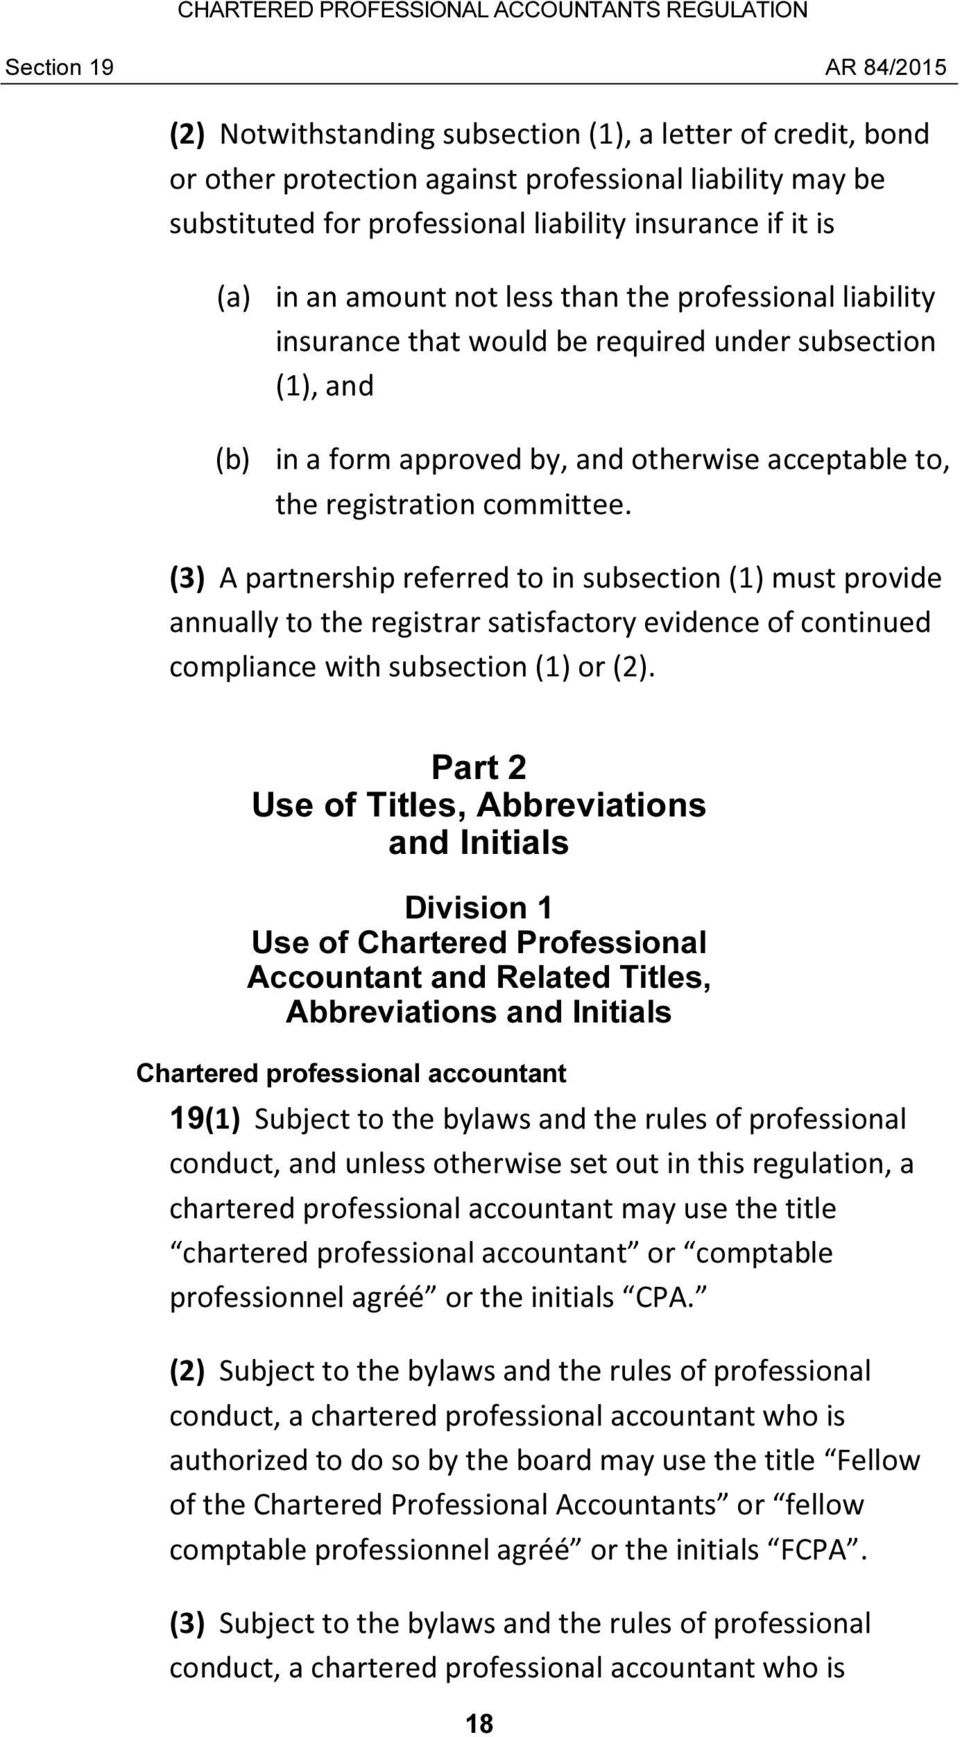 (3) A partnership referred to in subsection (1) must provide annually to the registrar satisfactory evidence of continued compliance with subsection (1) or (2).